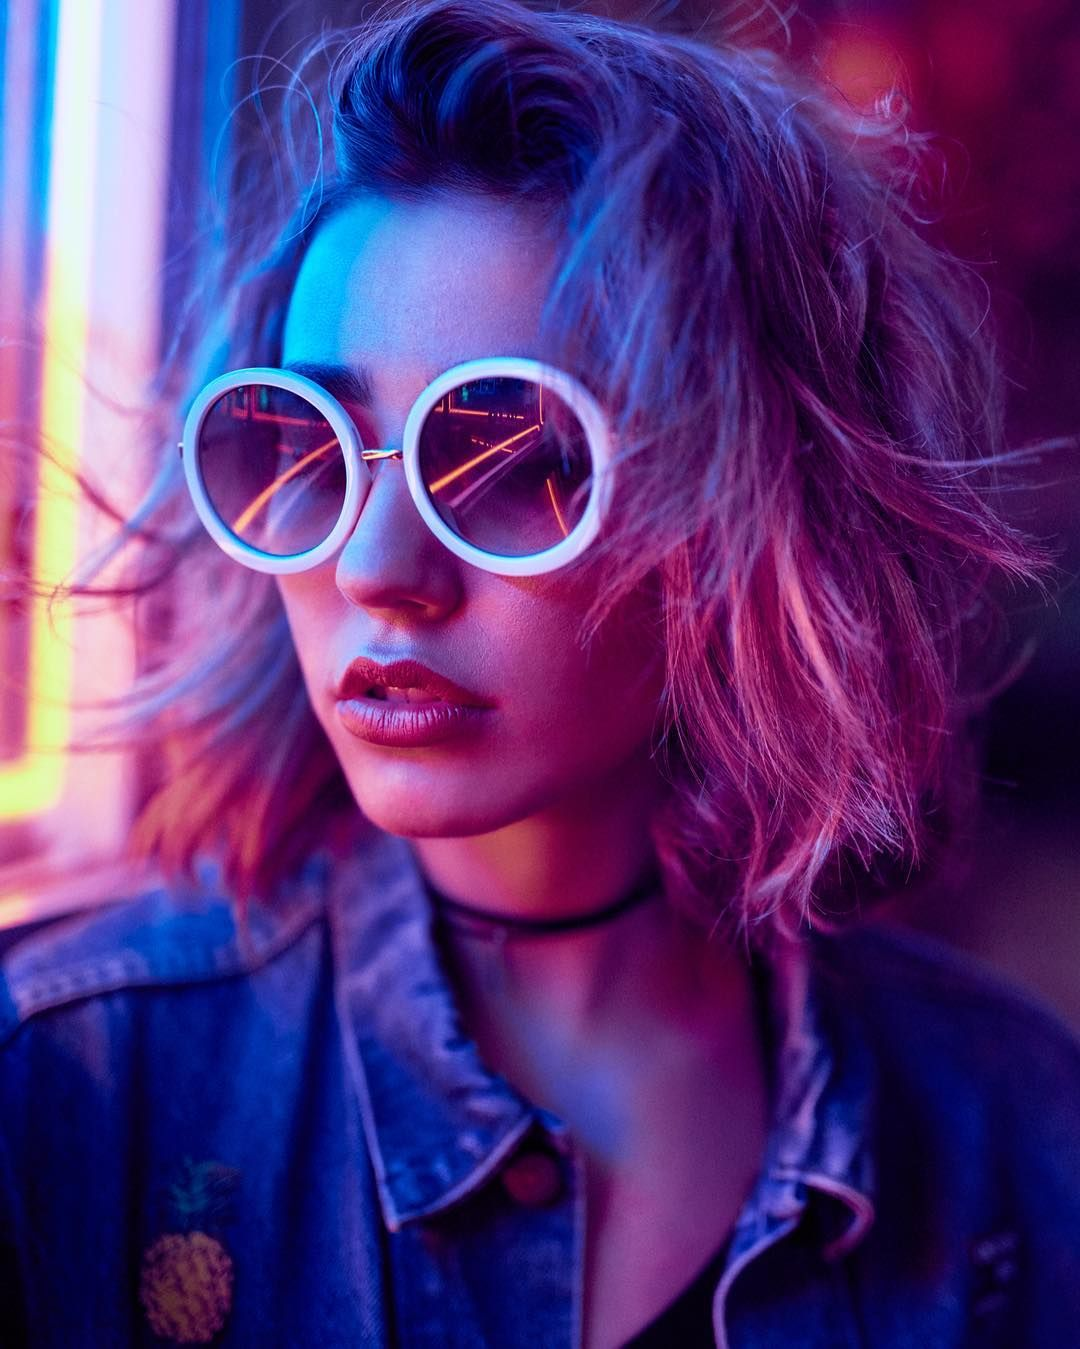 Neon Lit Shot By Mark Tiu (With Images)